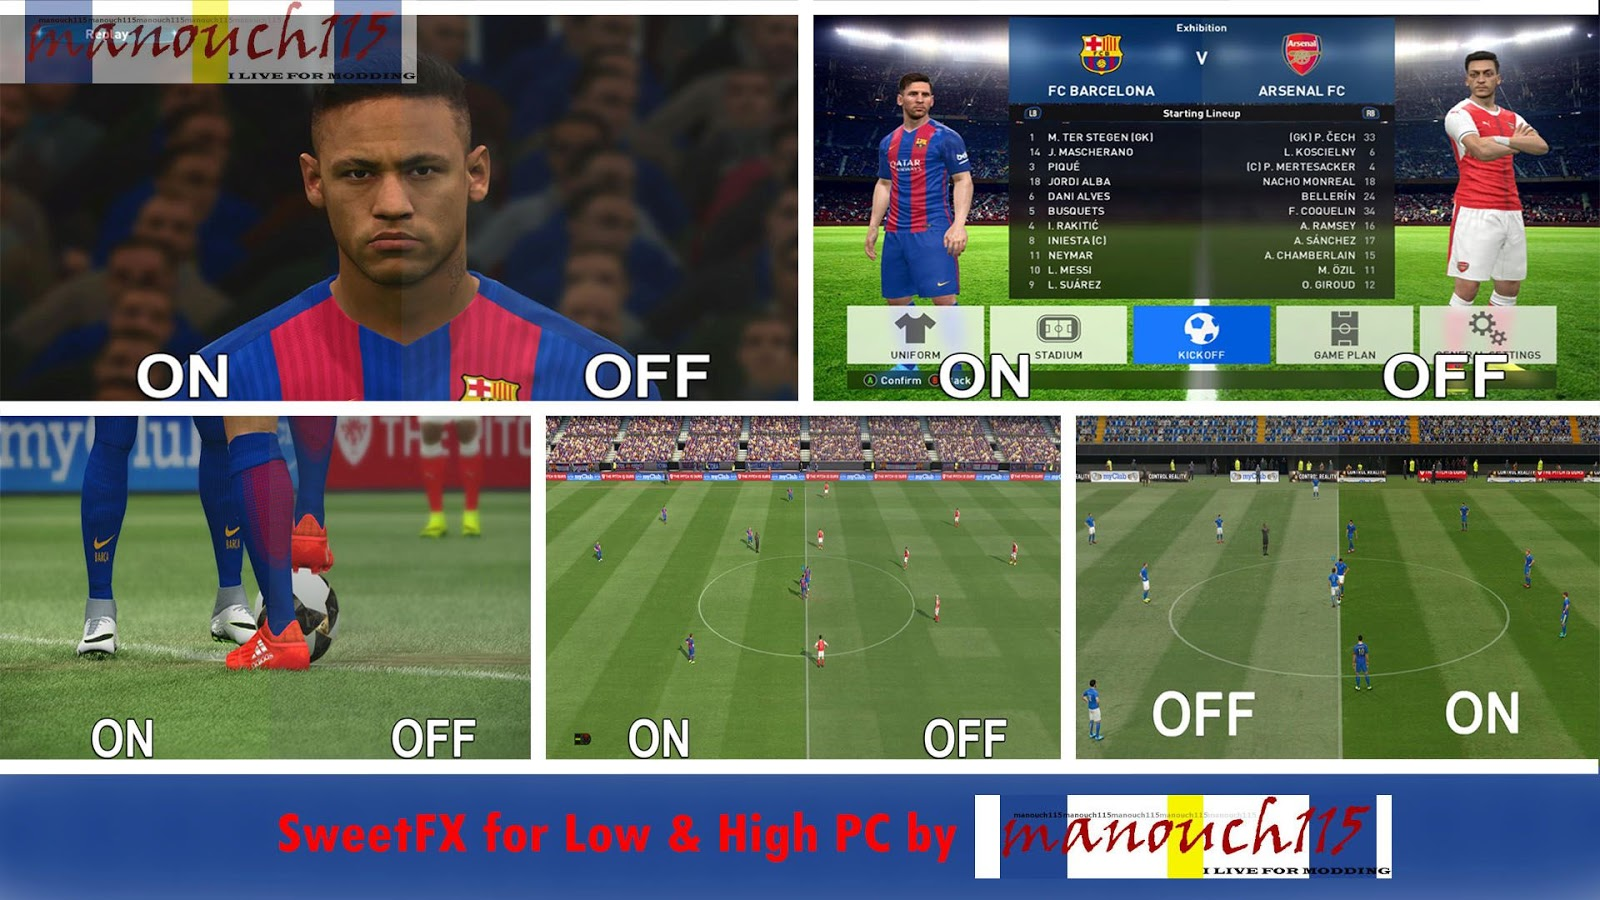 PES 2018 SweetFX For Low and High PC by manouch 115